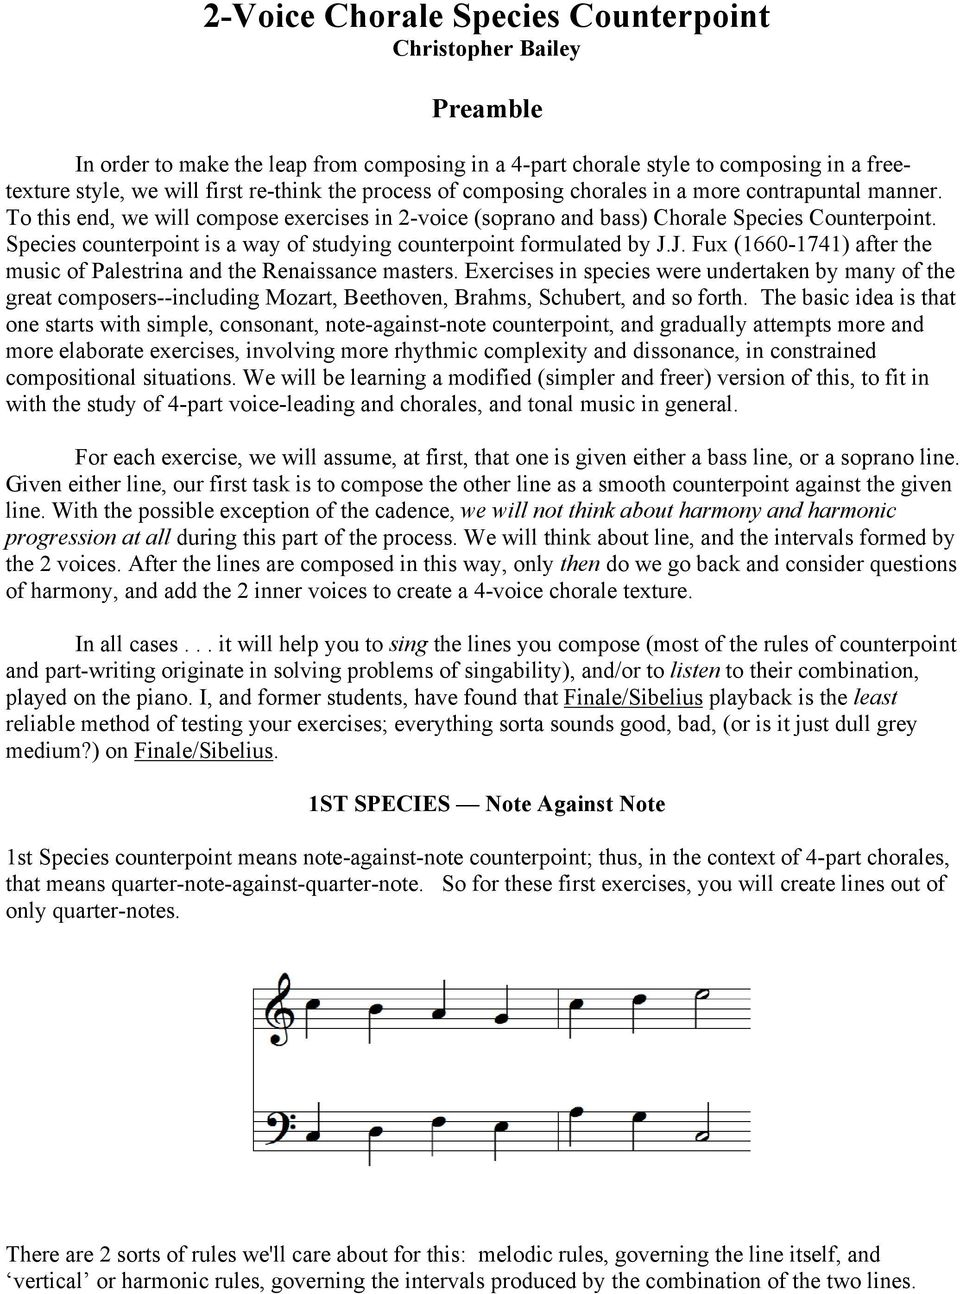 2-Voice Chorale Species Counterpoint Christopher Bailey - PDF